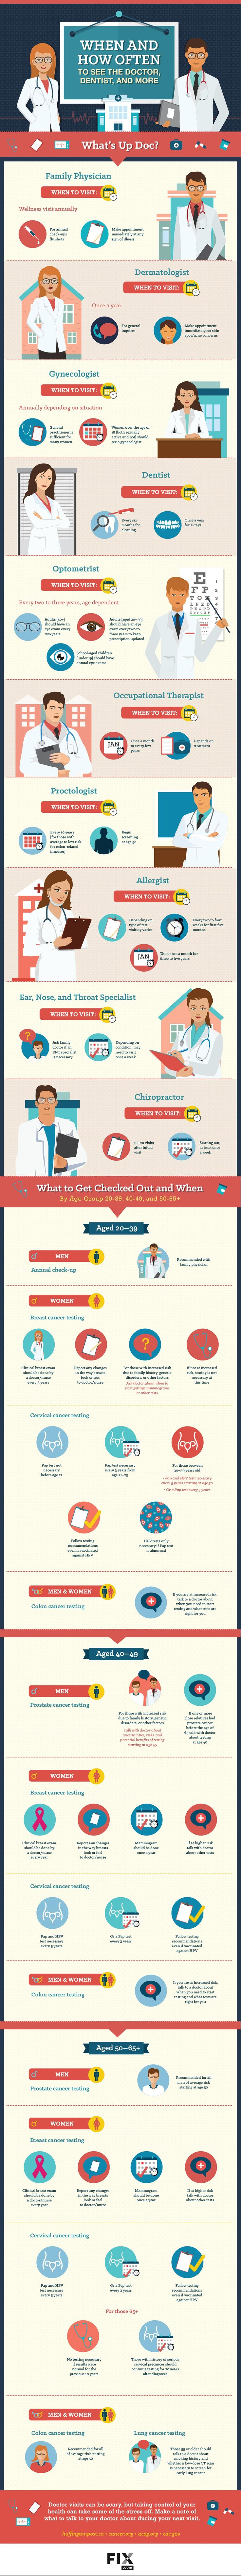 When and How Often to See the Doctor, Dentist, and More #infographic #Health